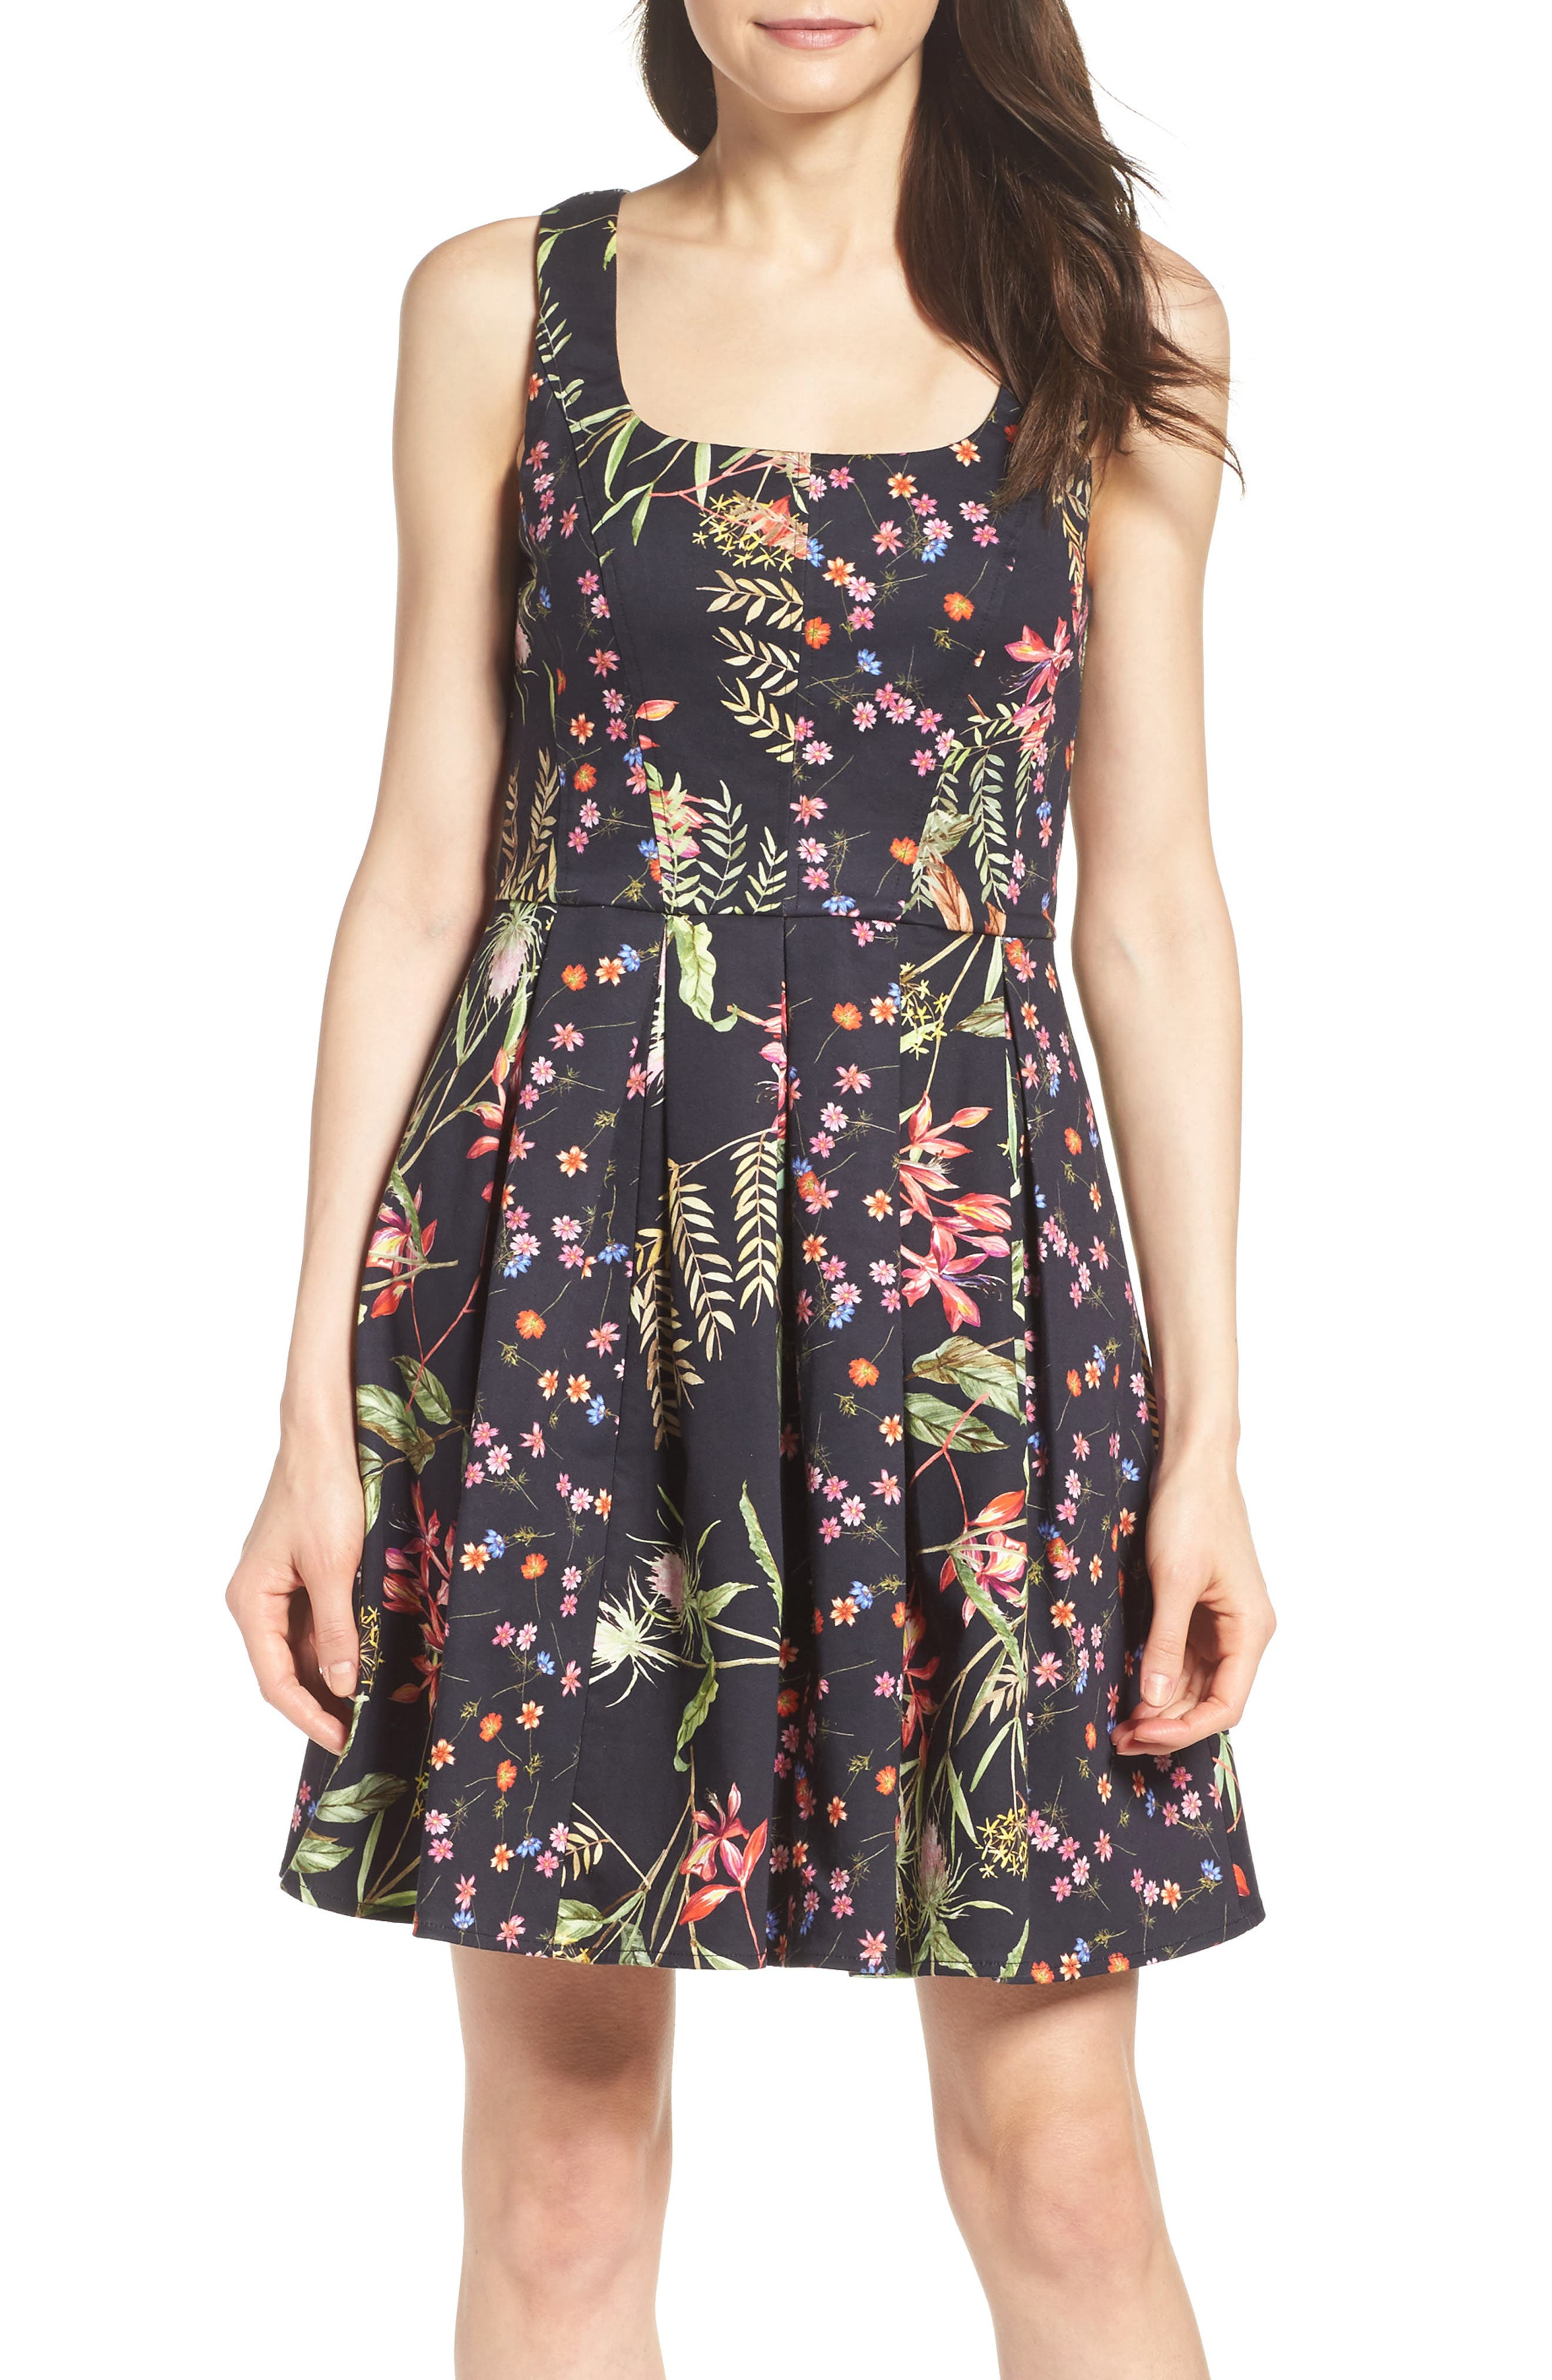 French Connection Bluhm & Botero Fit & Flare Dress